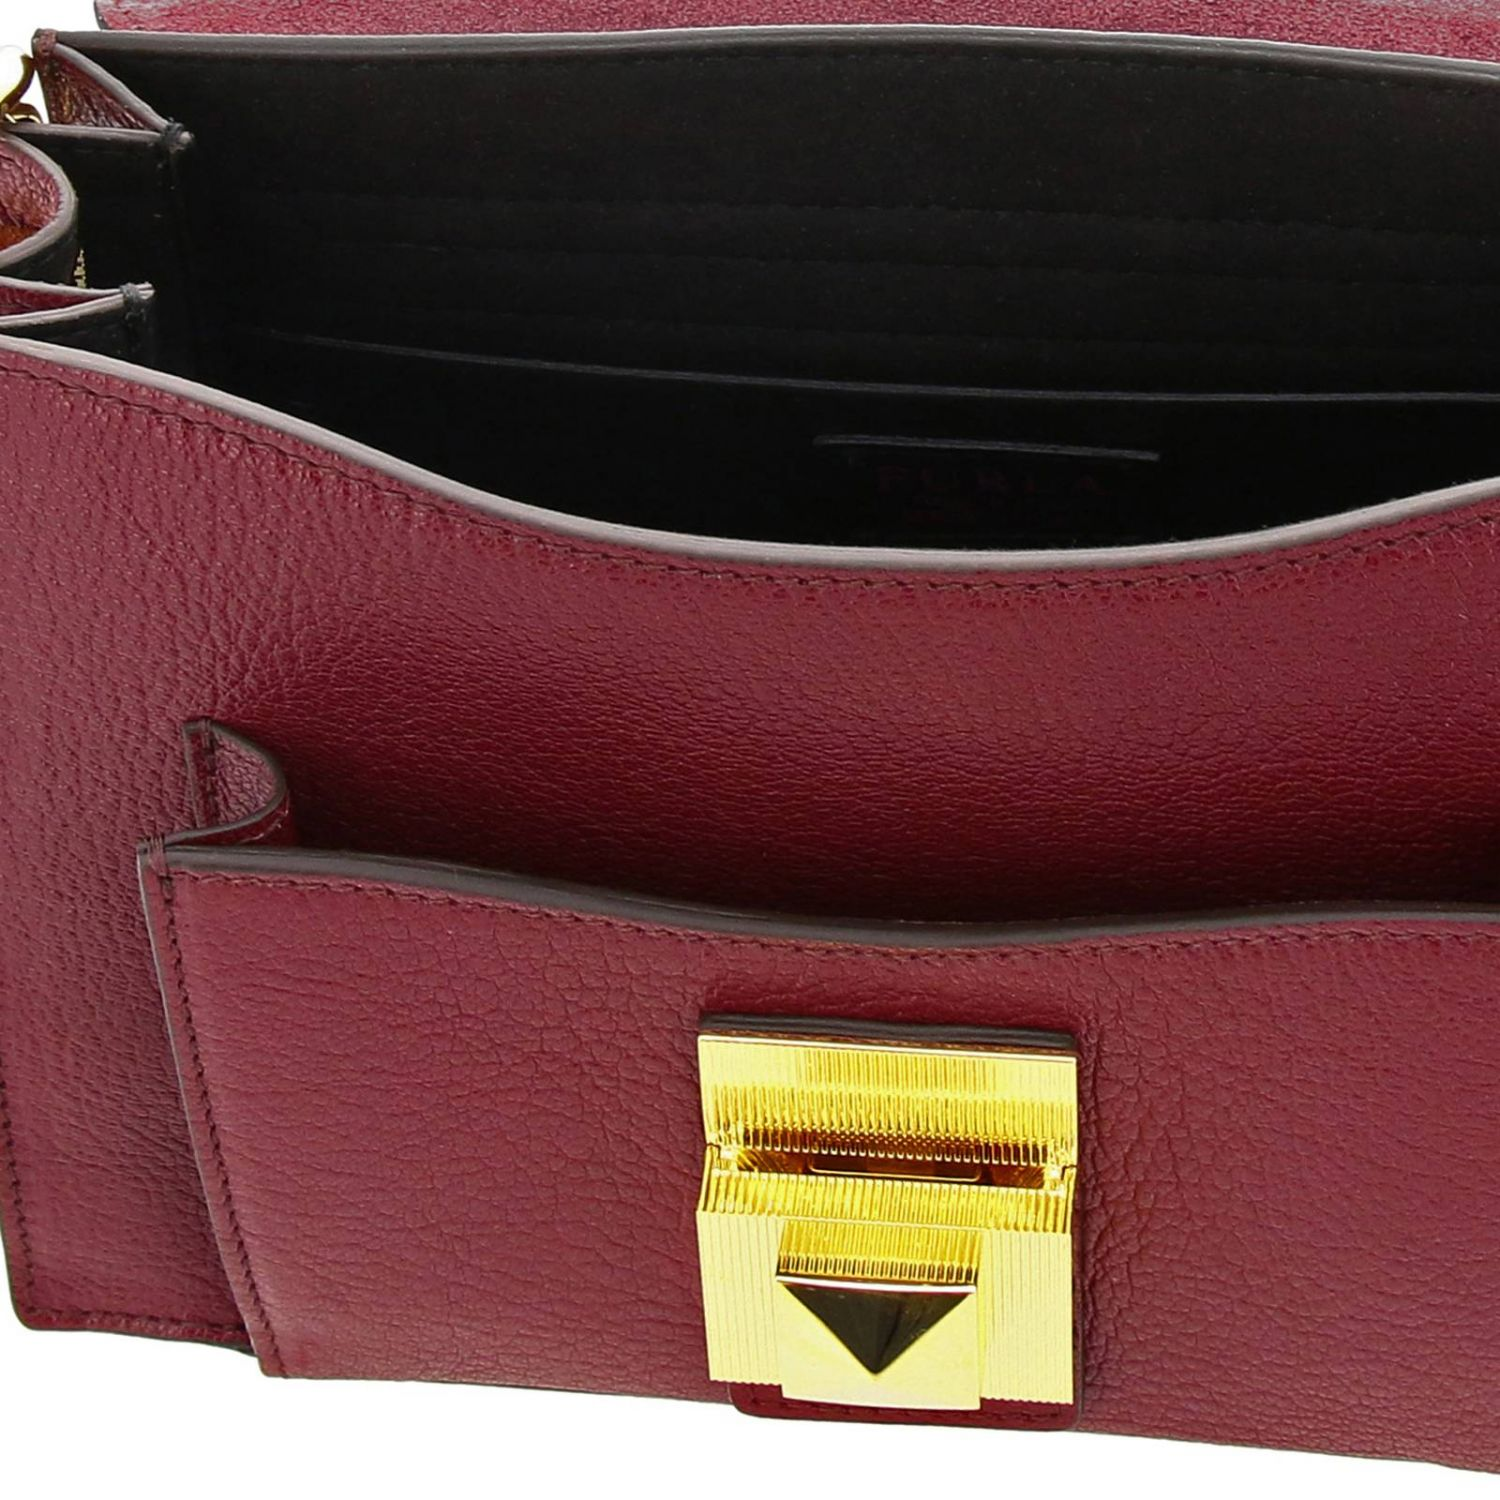 Diva Furla small bag in textured leather with handle and shoulder strap plum 5